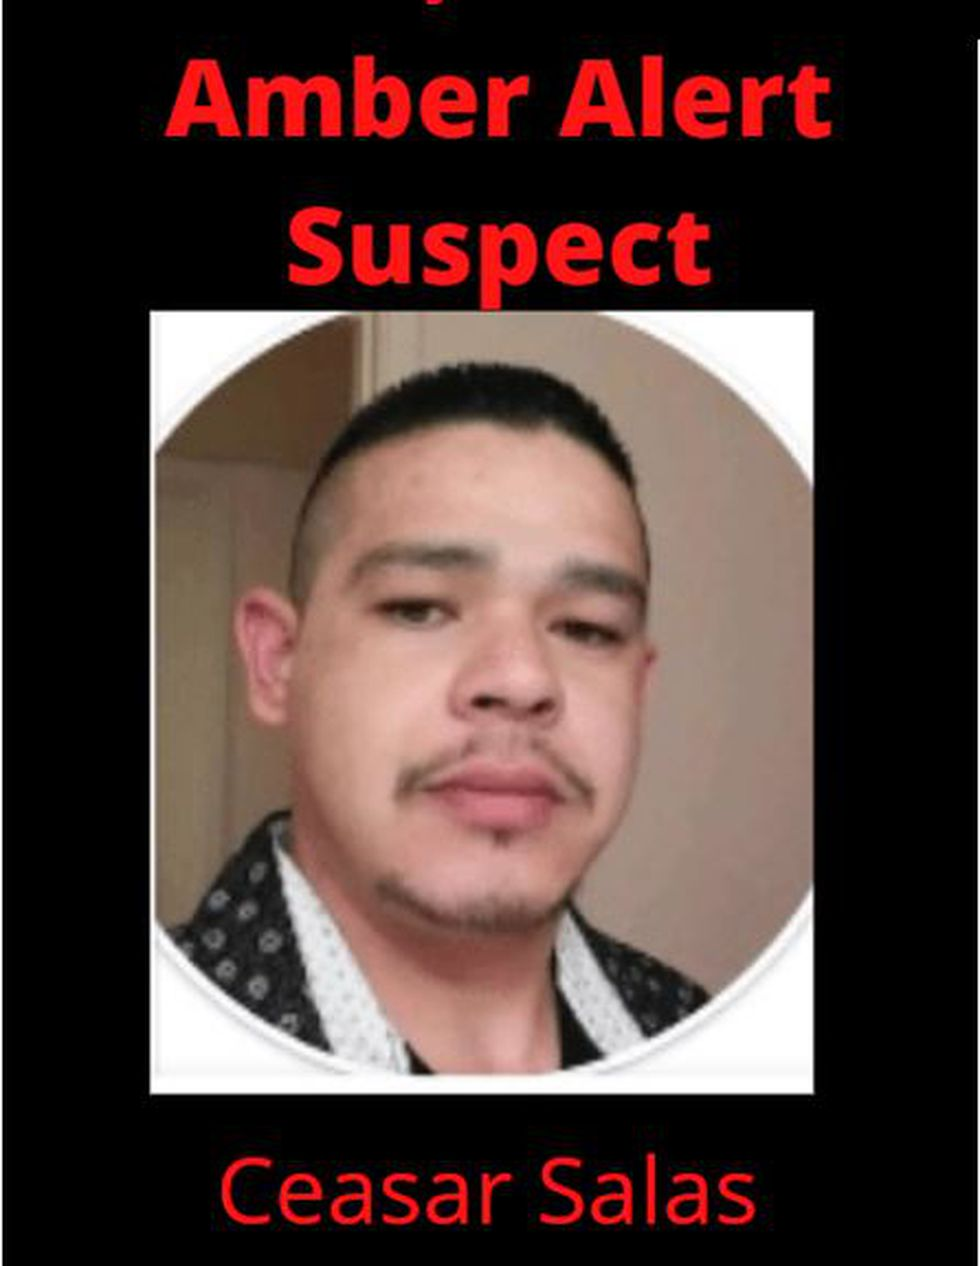 Ceasar Salas is a suspect in a New Mexico Amber Alert.